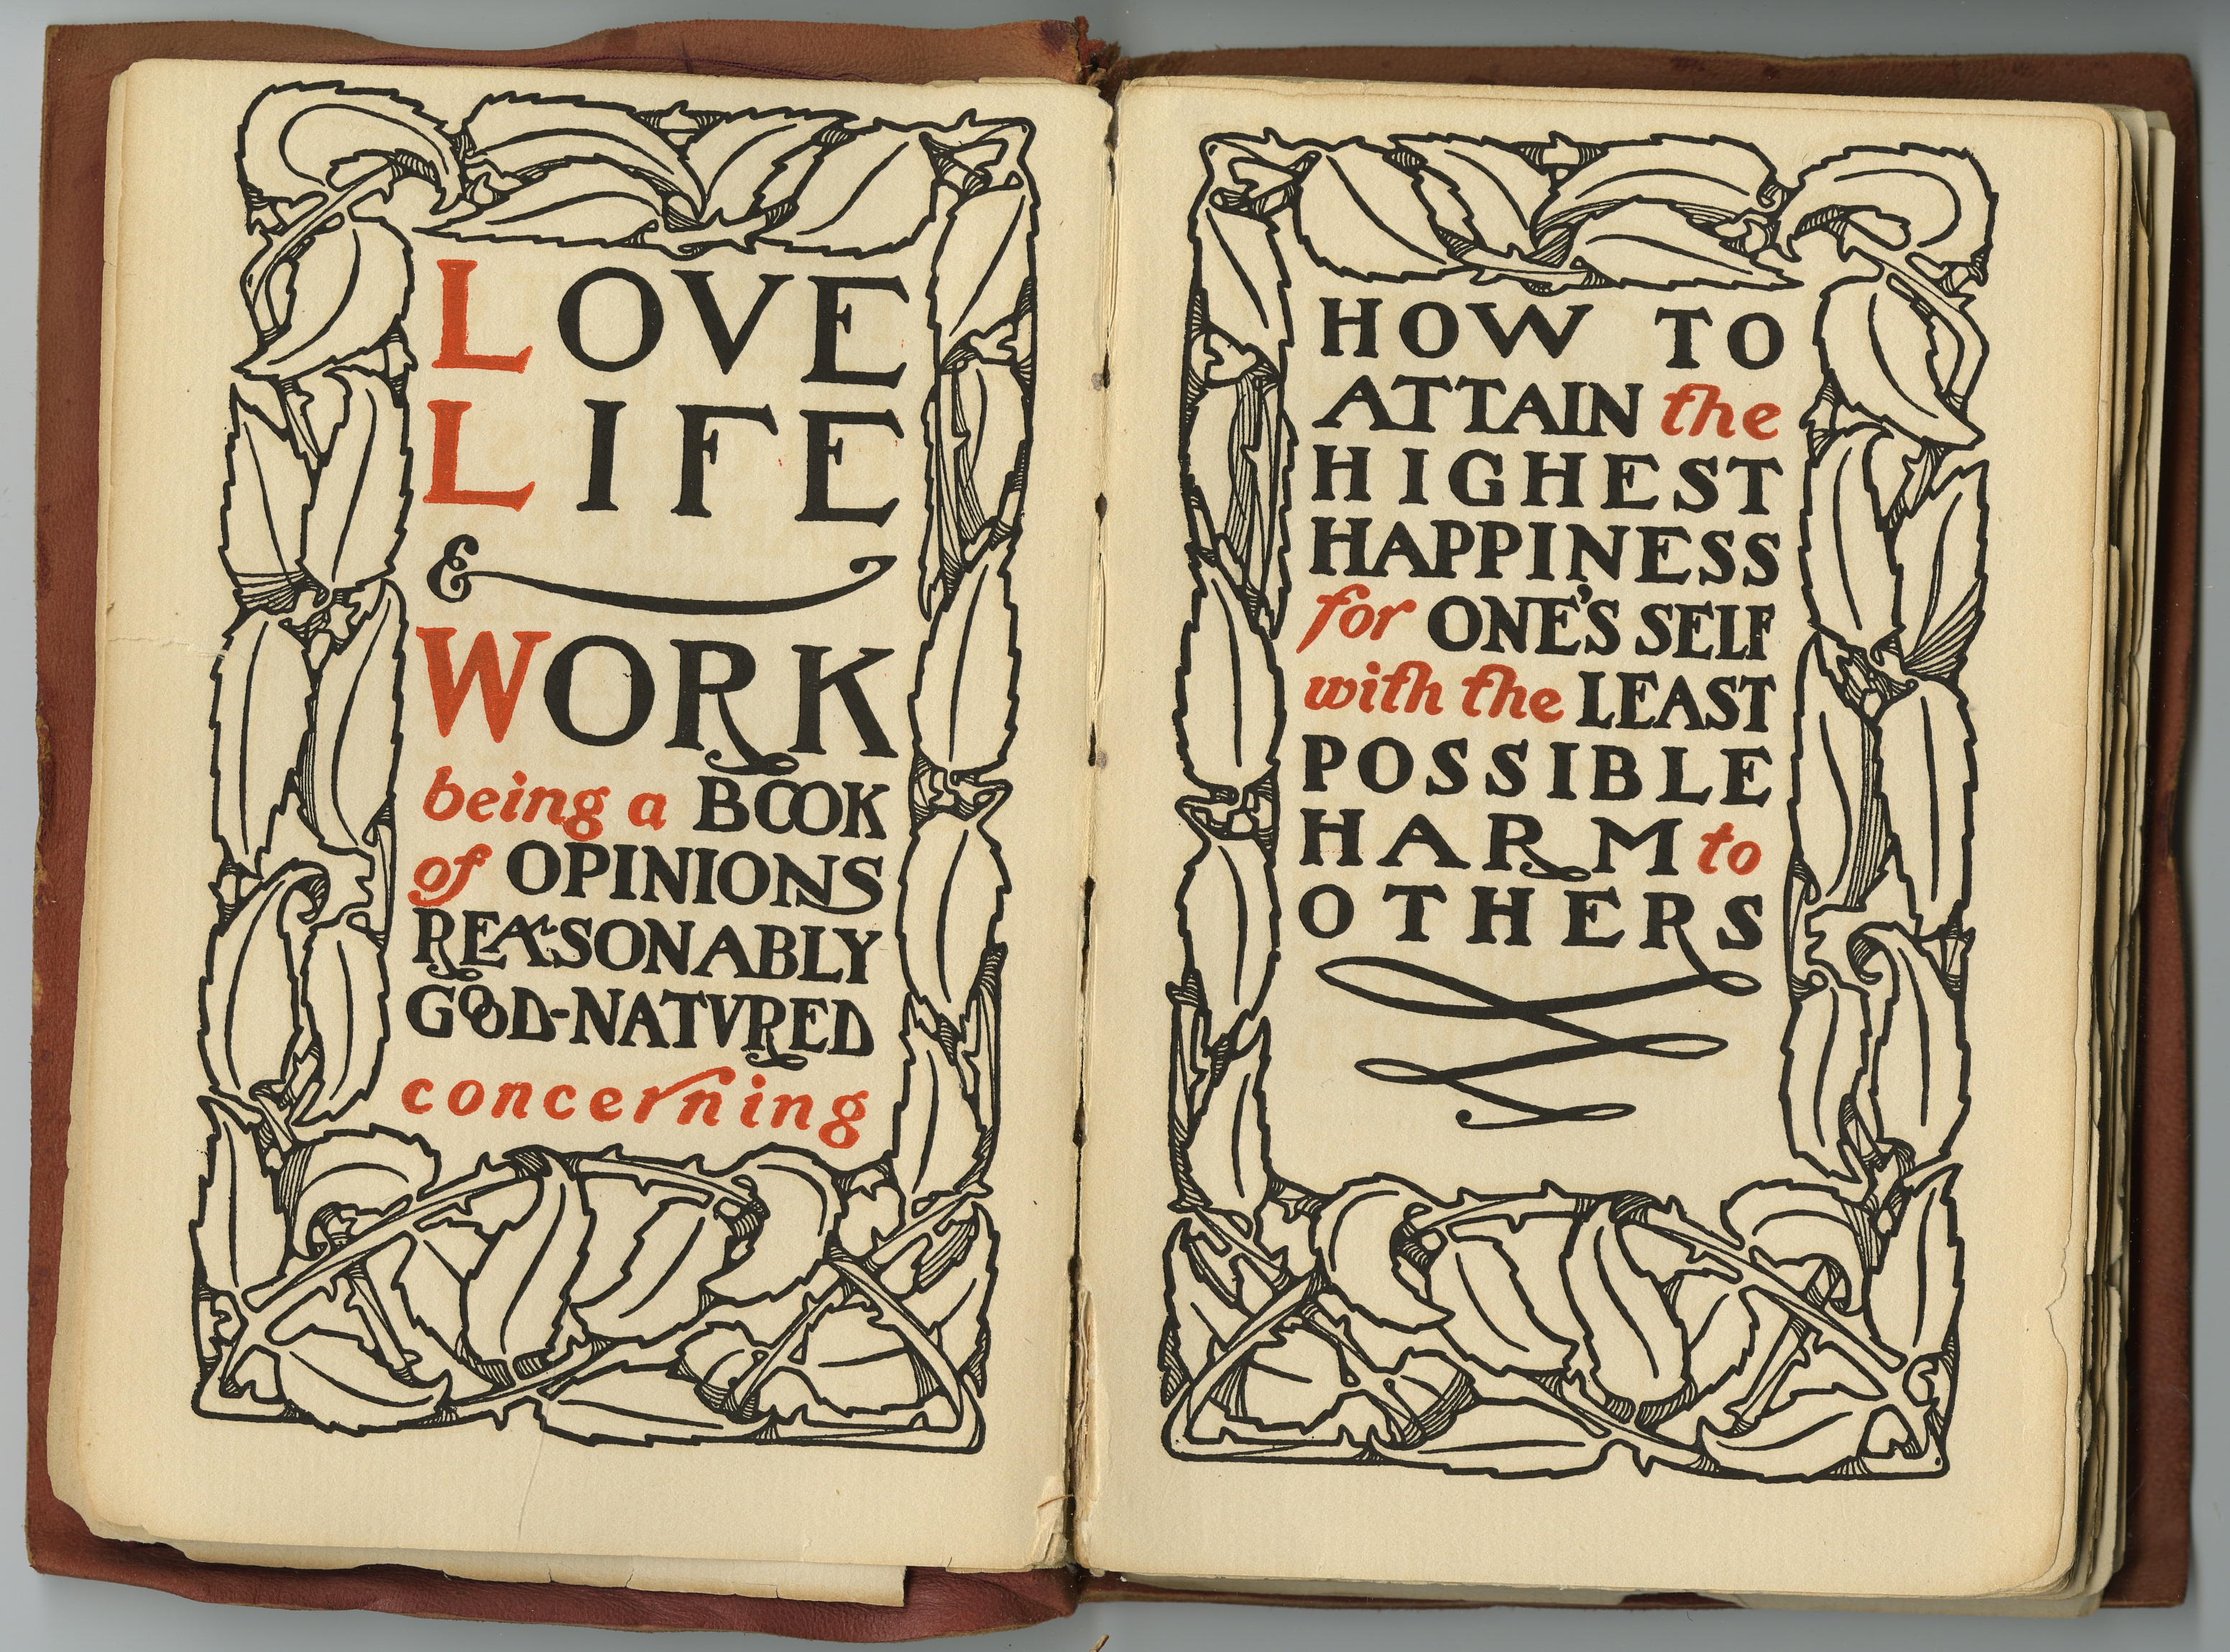 Title Pages from Love, Life & Work by Elbert Hubbard (East Aurora, NY: The Roycrofters, 1906.)